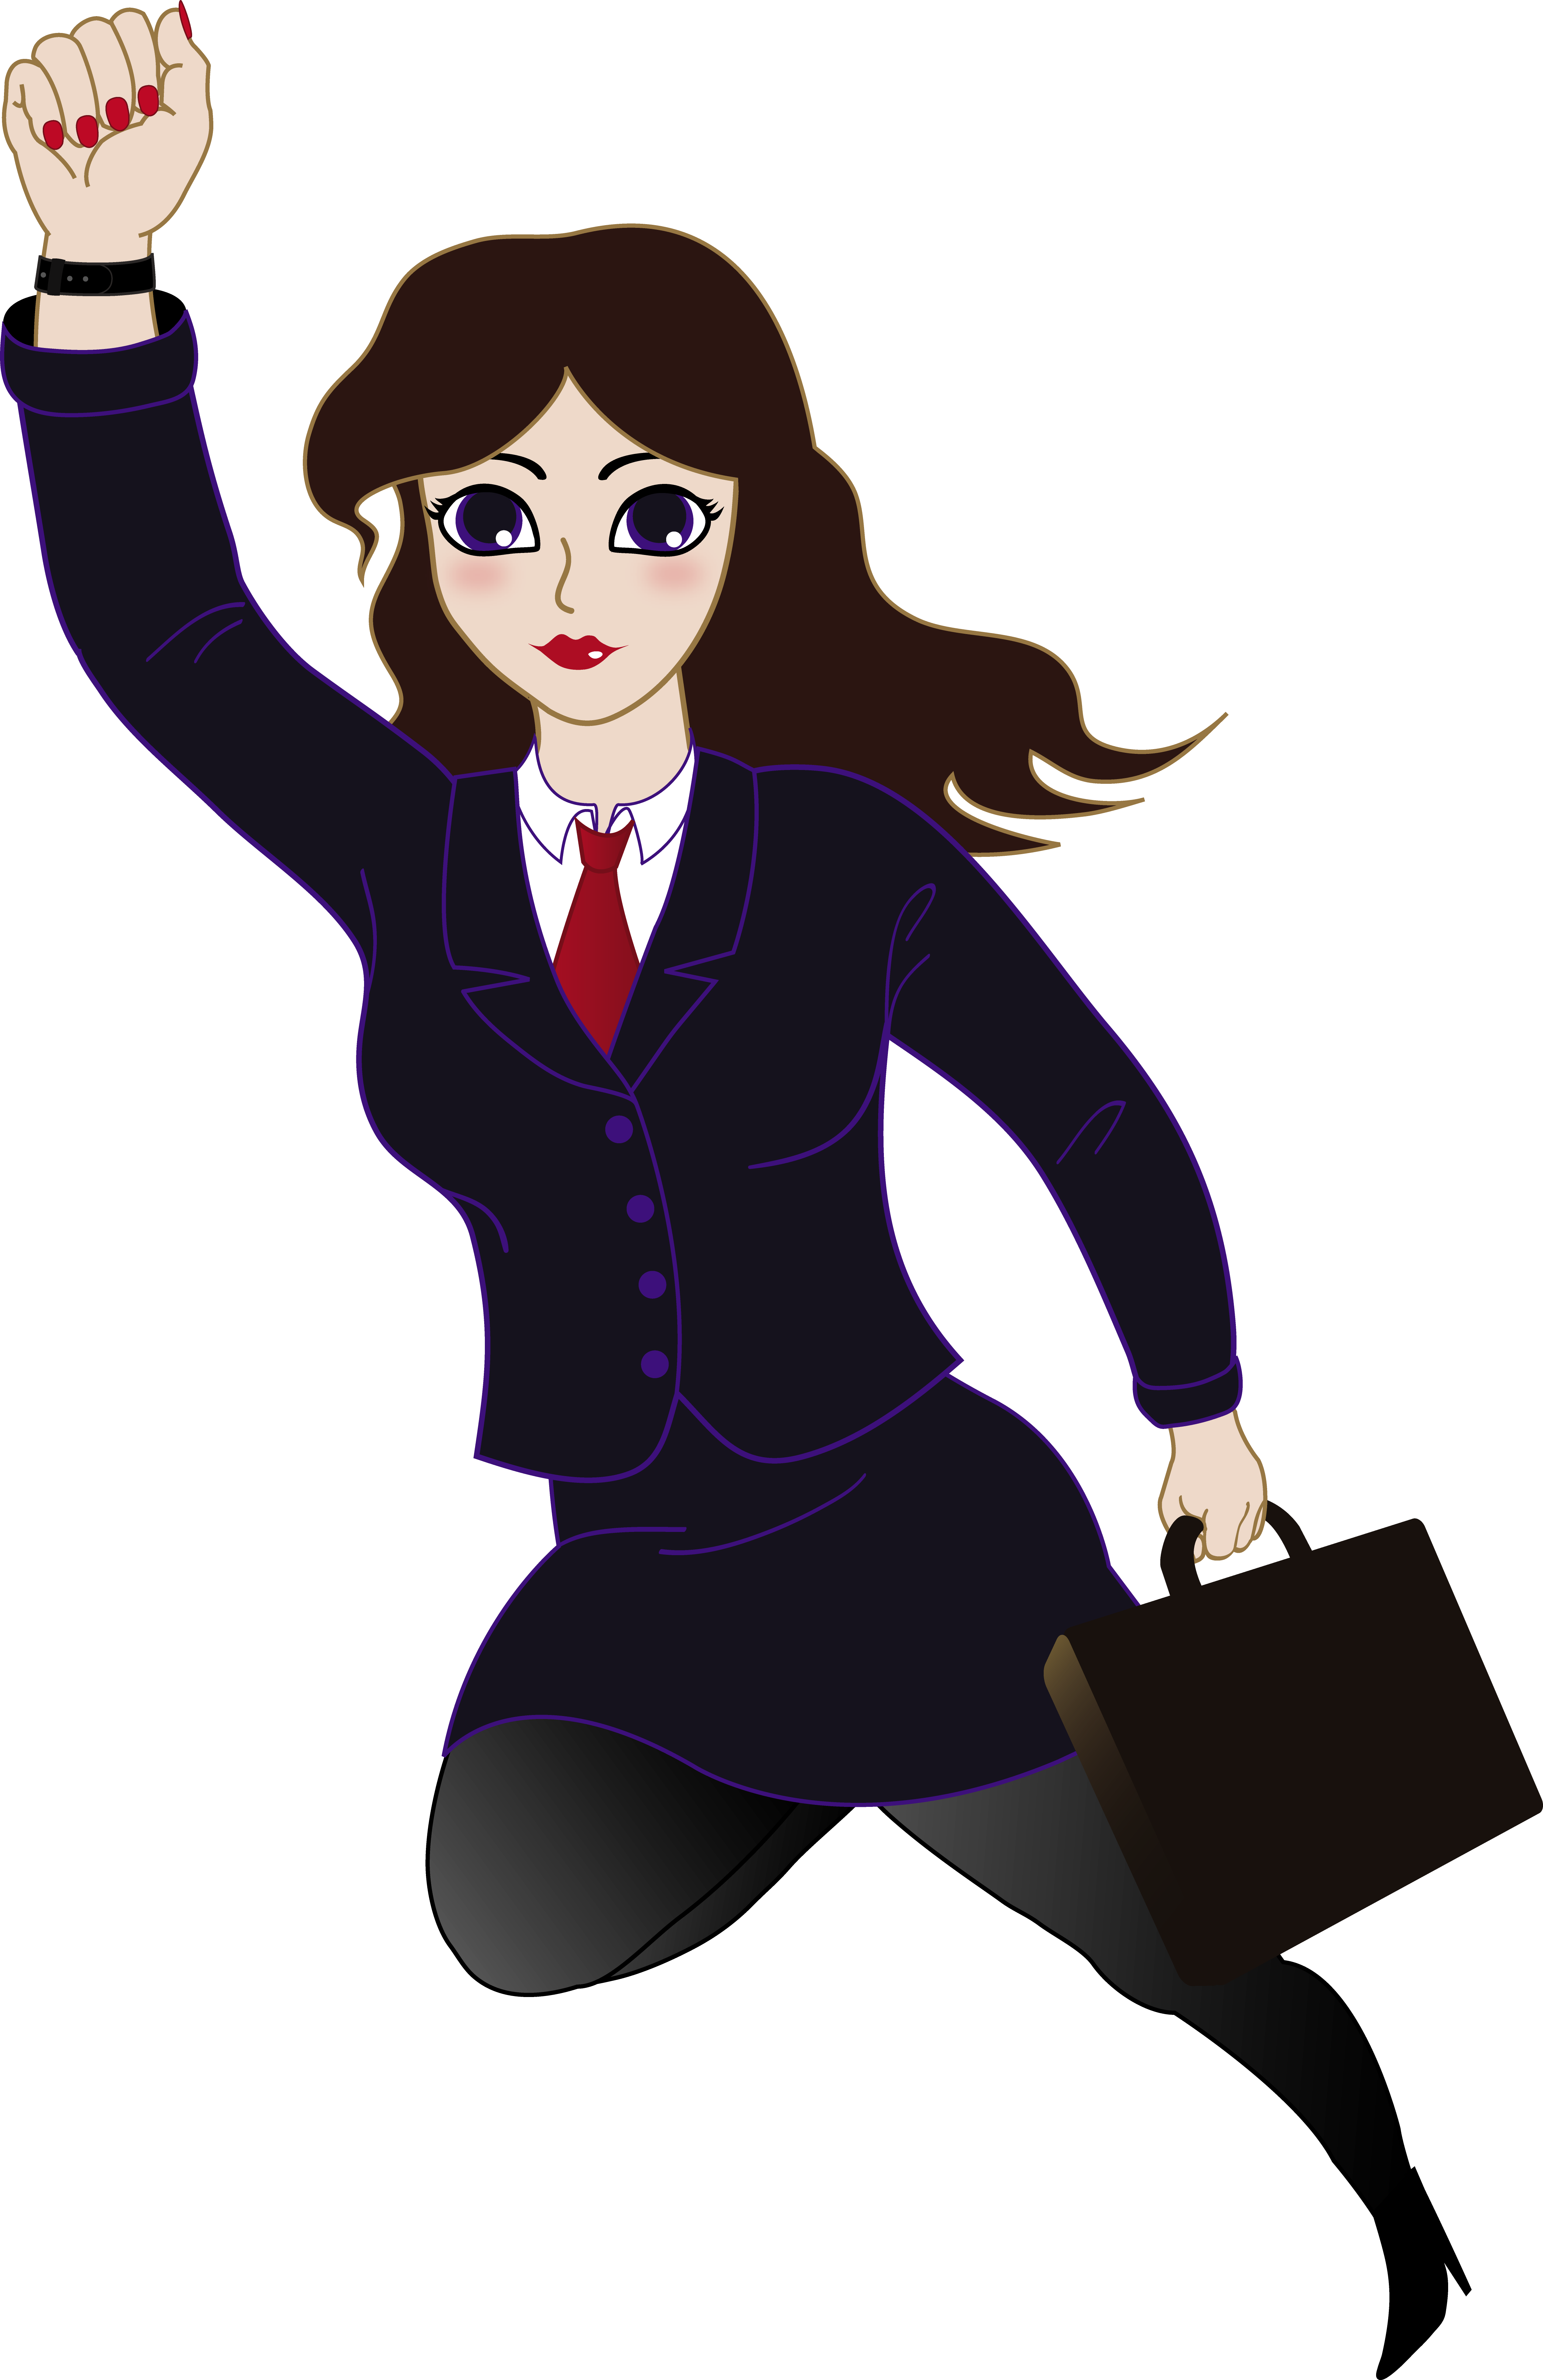 Free clipart graphics woman image Free clipart graphics woman - ClipartFest image